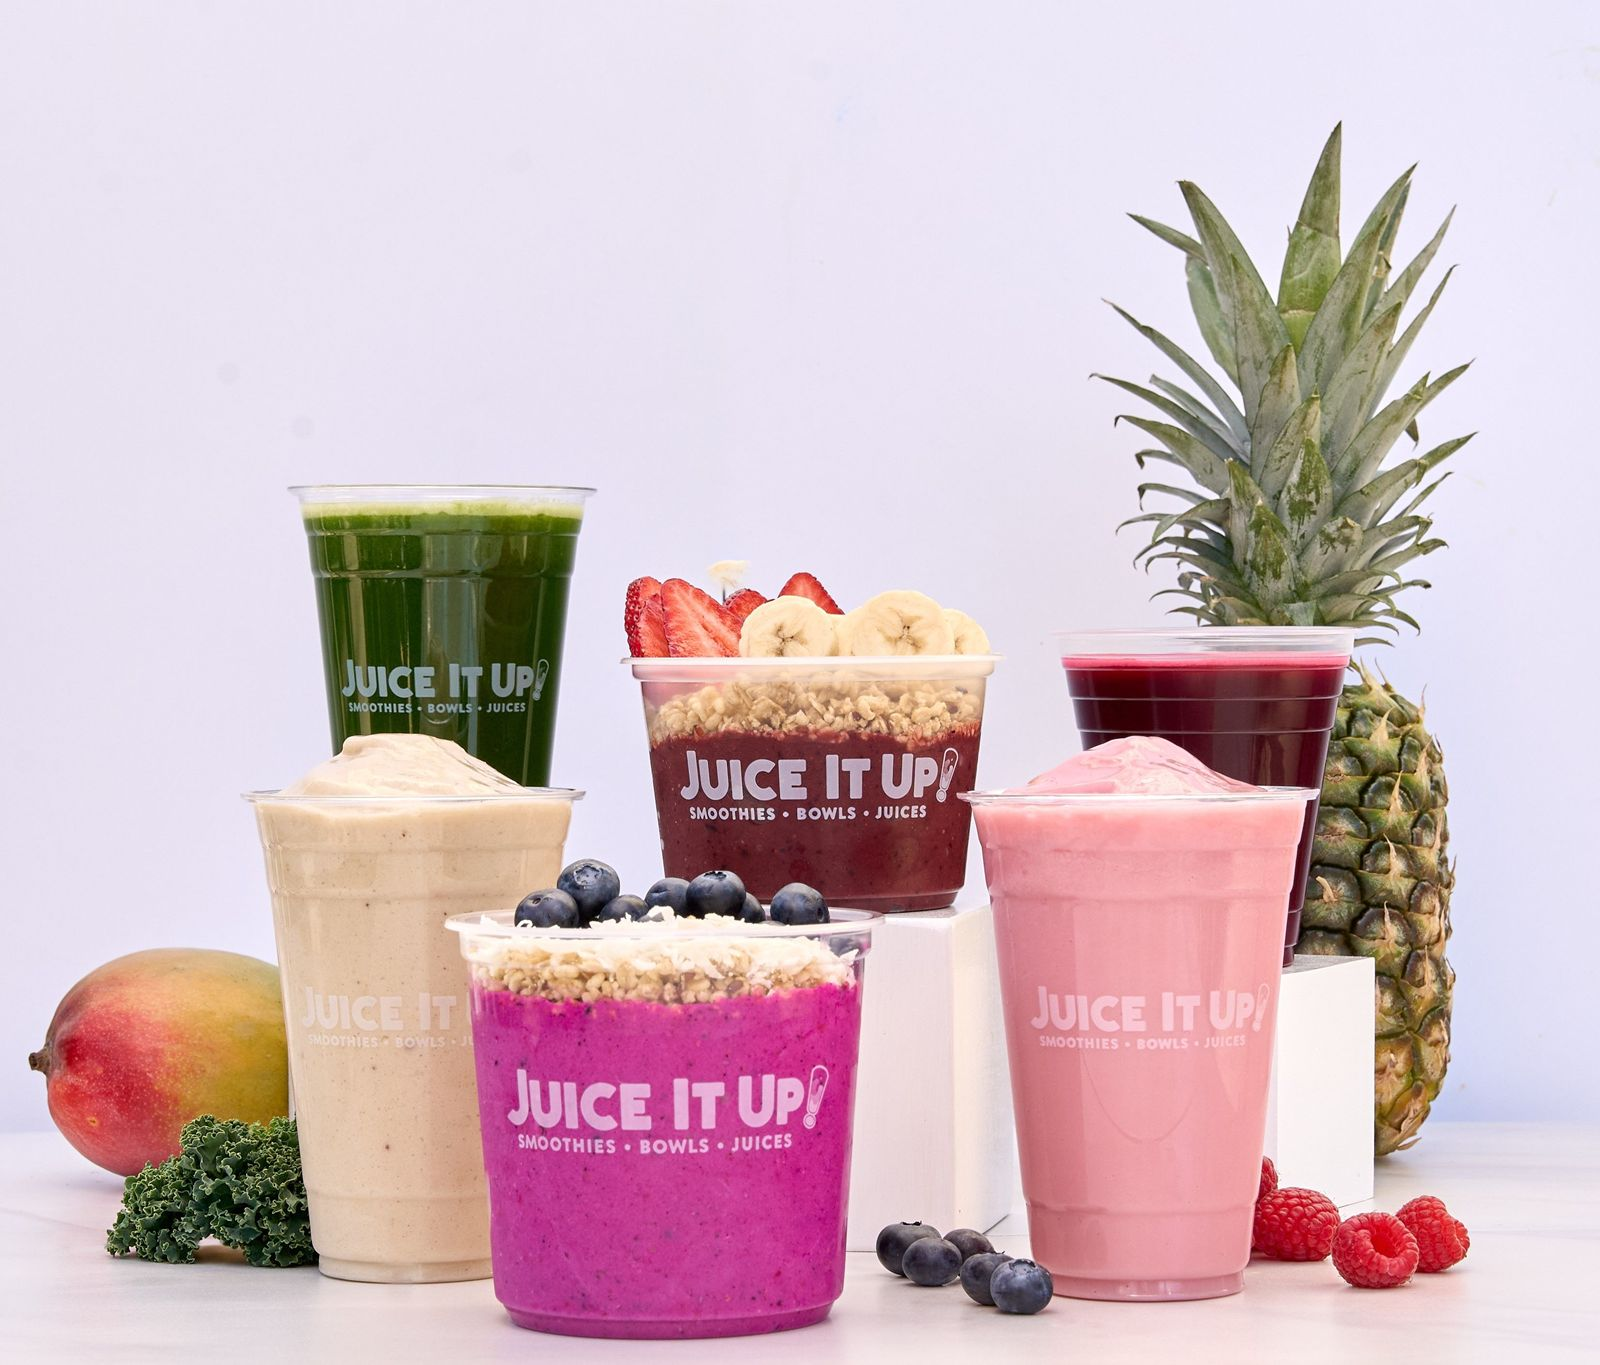 Juice It Up! Continues to Smash Sales Records in Third Quarter